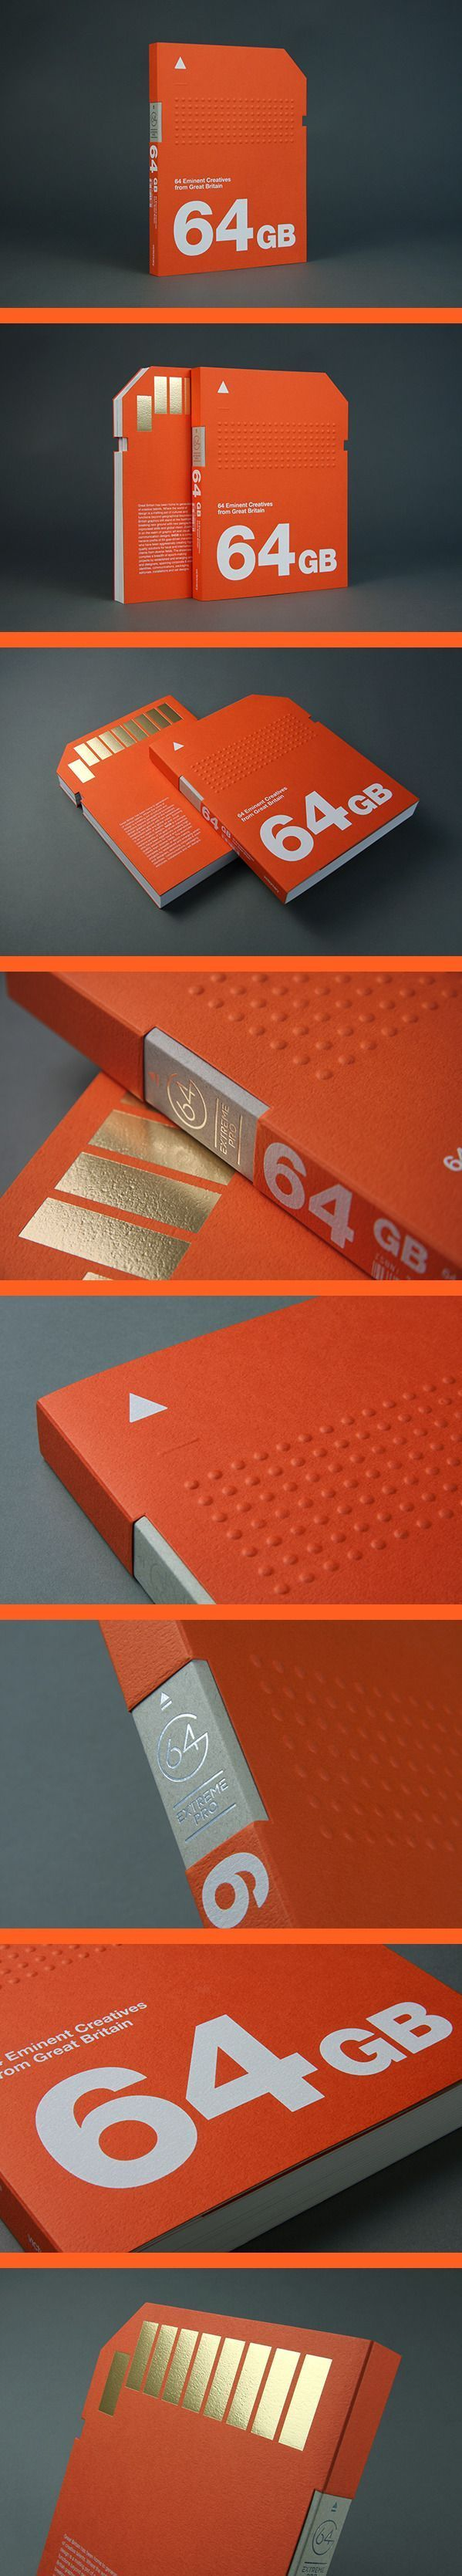 64GB 64 Eminent Creatives from Great Britain | love the vibrant orange, bold font and the use of the die-cut.: